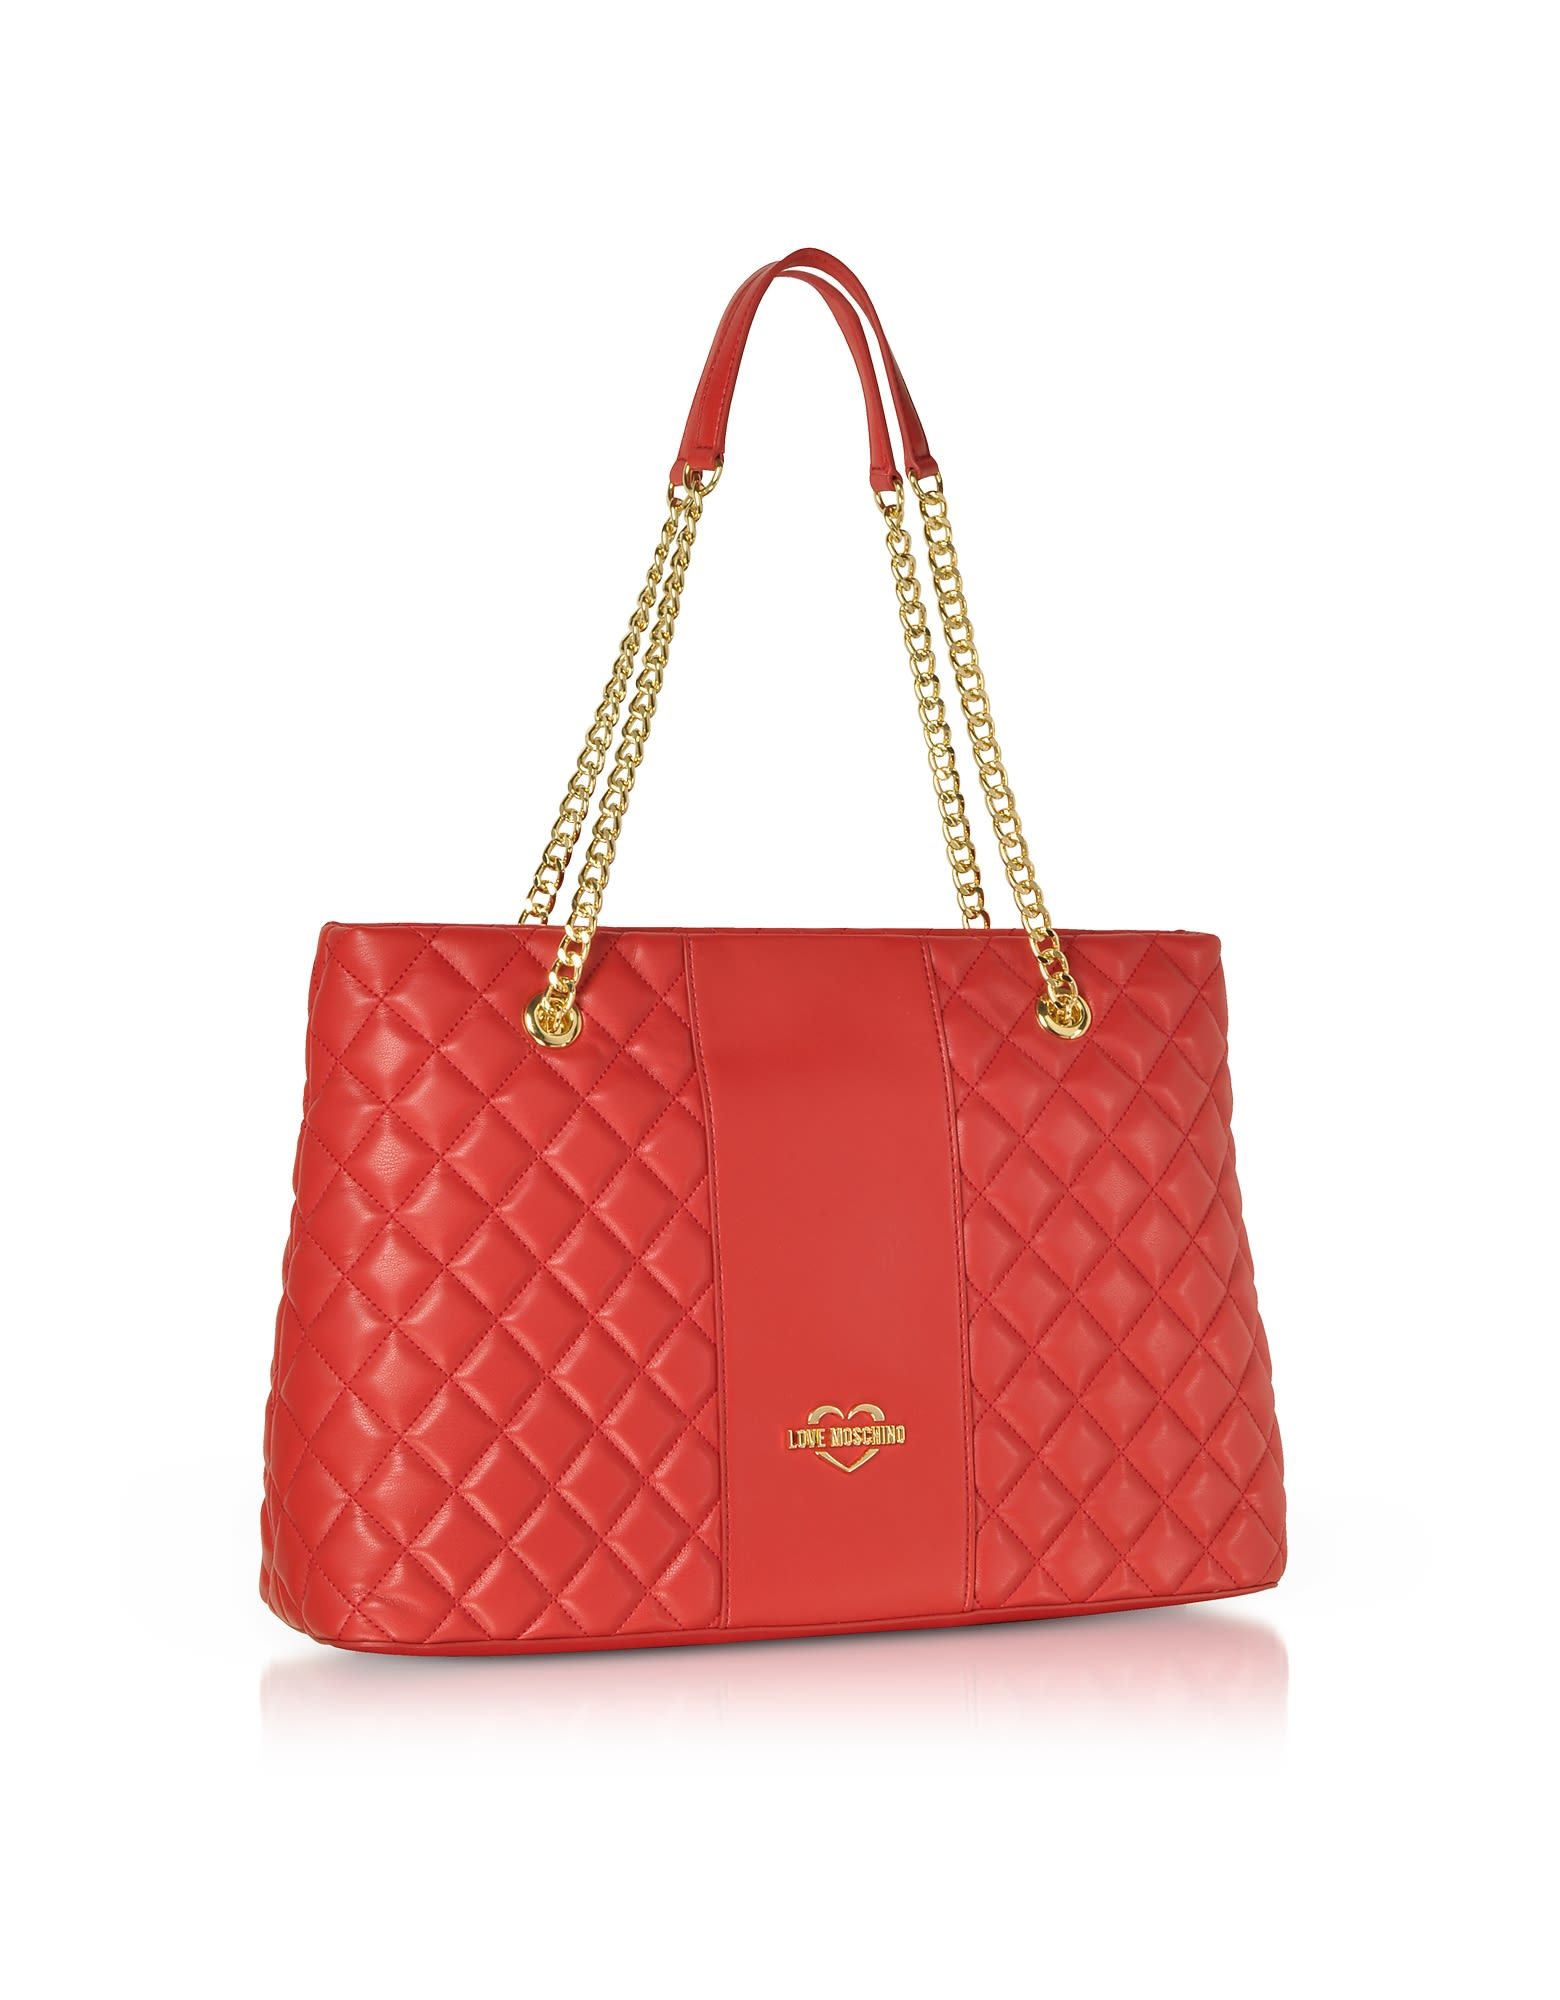 6576e4eae0d87 Love Moschino Love Moschino Quilted Eco Leather Tote Bag - Red ...